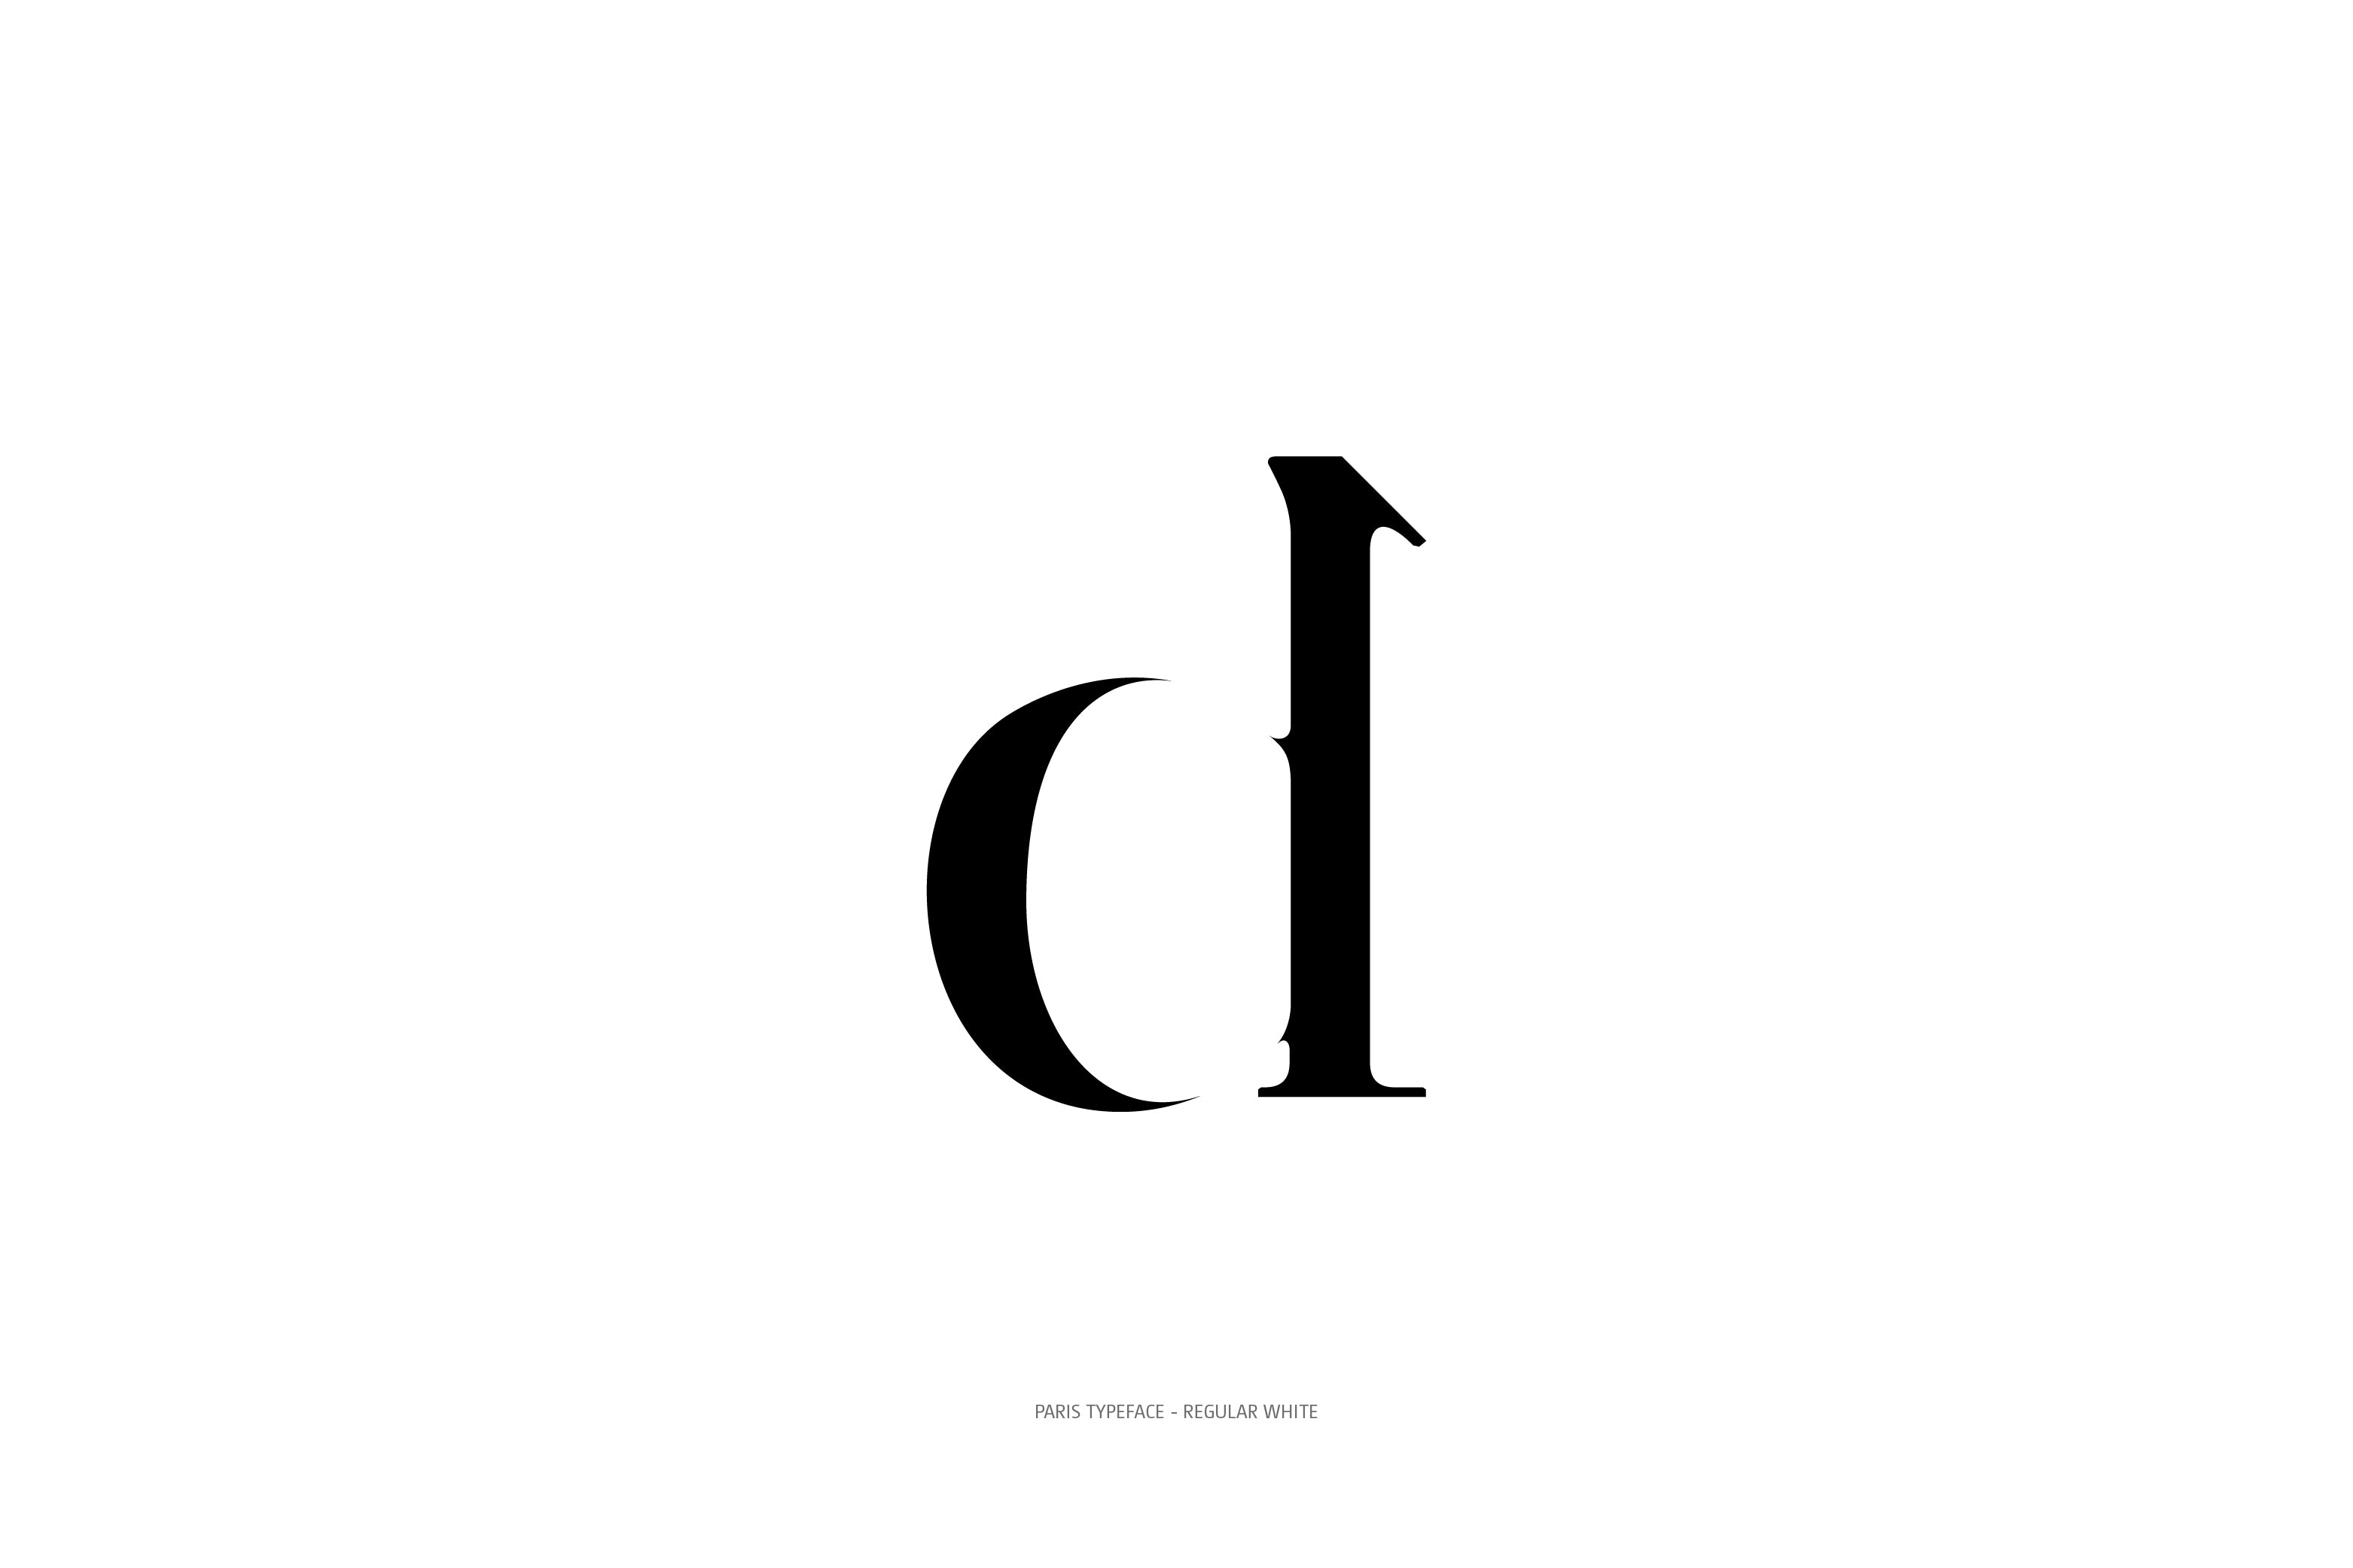 Paris Typeface Regular White d